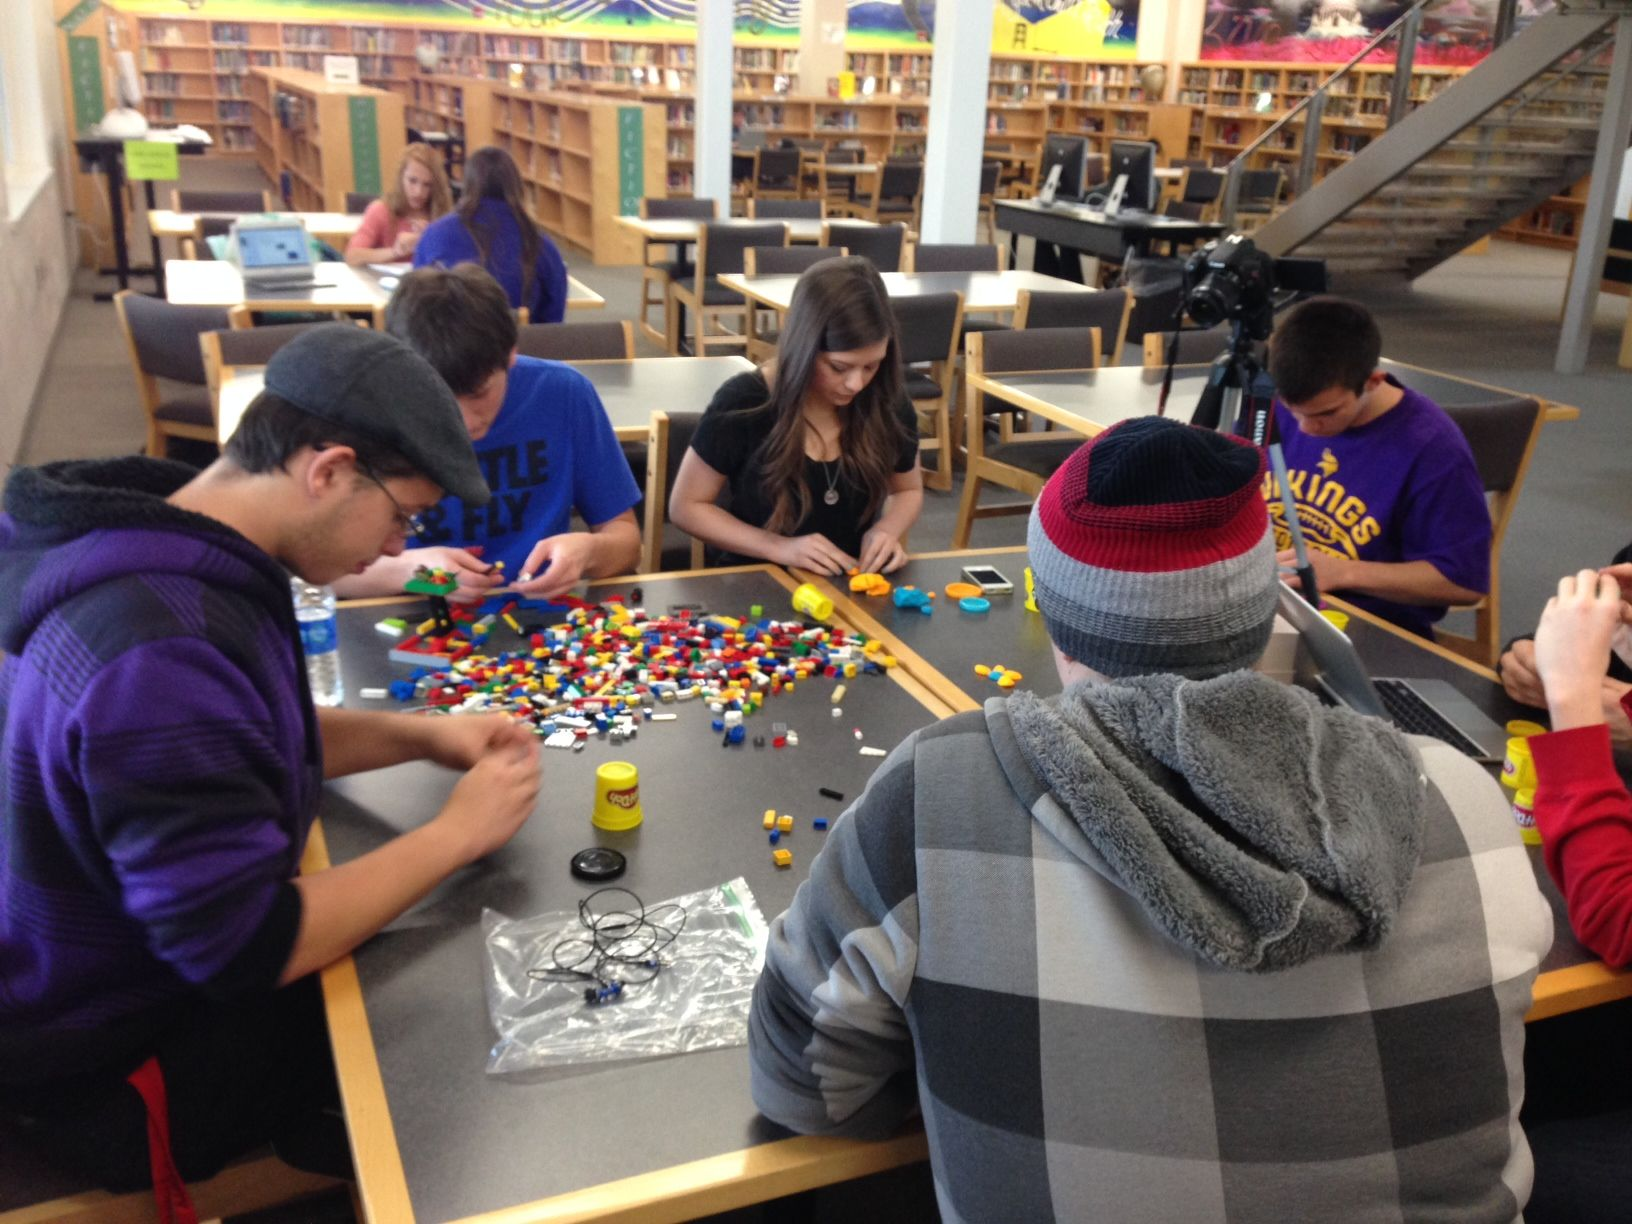 Srrha Students Engaged In A Makerspace Program Image